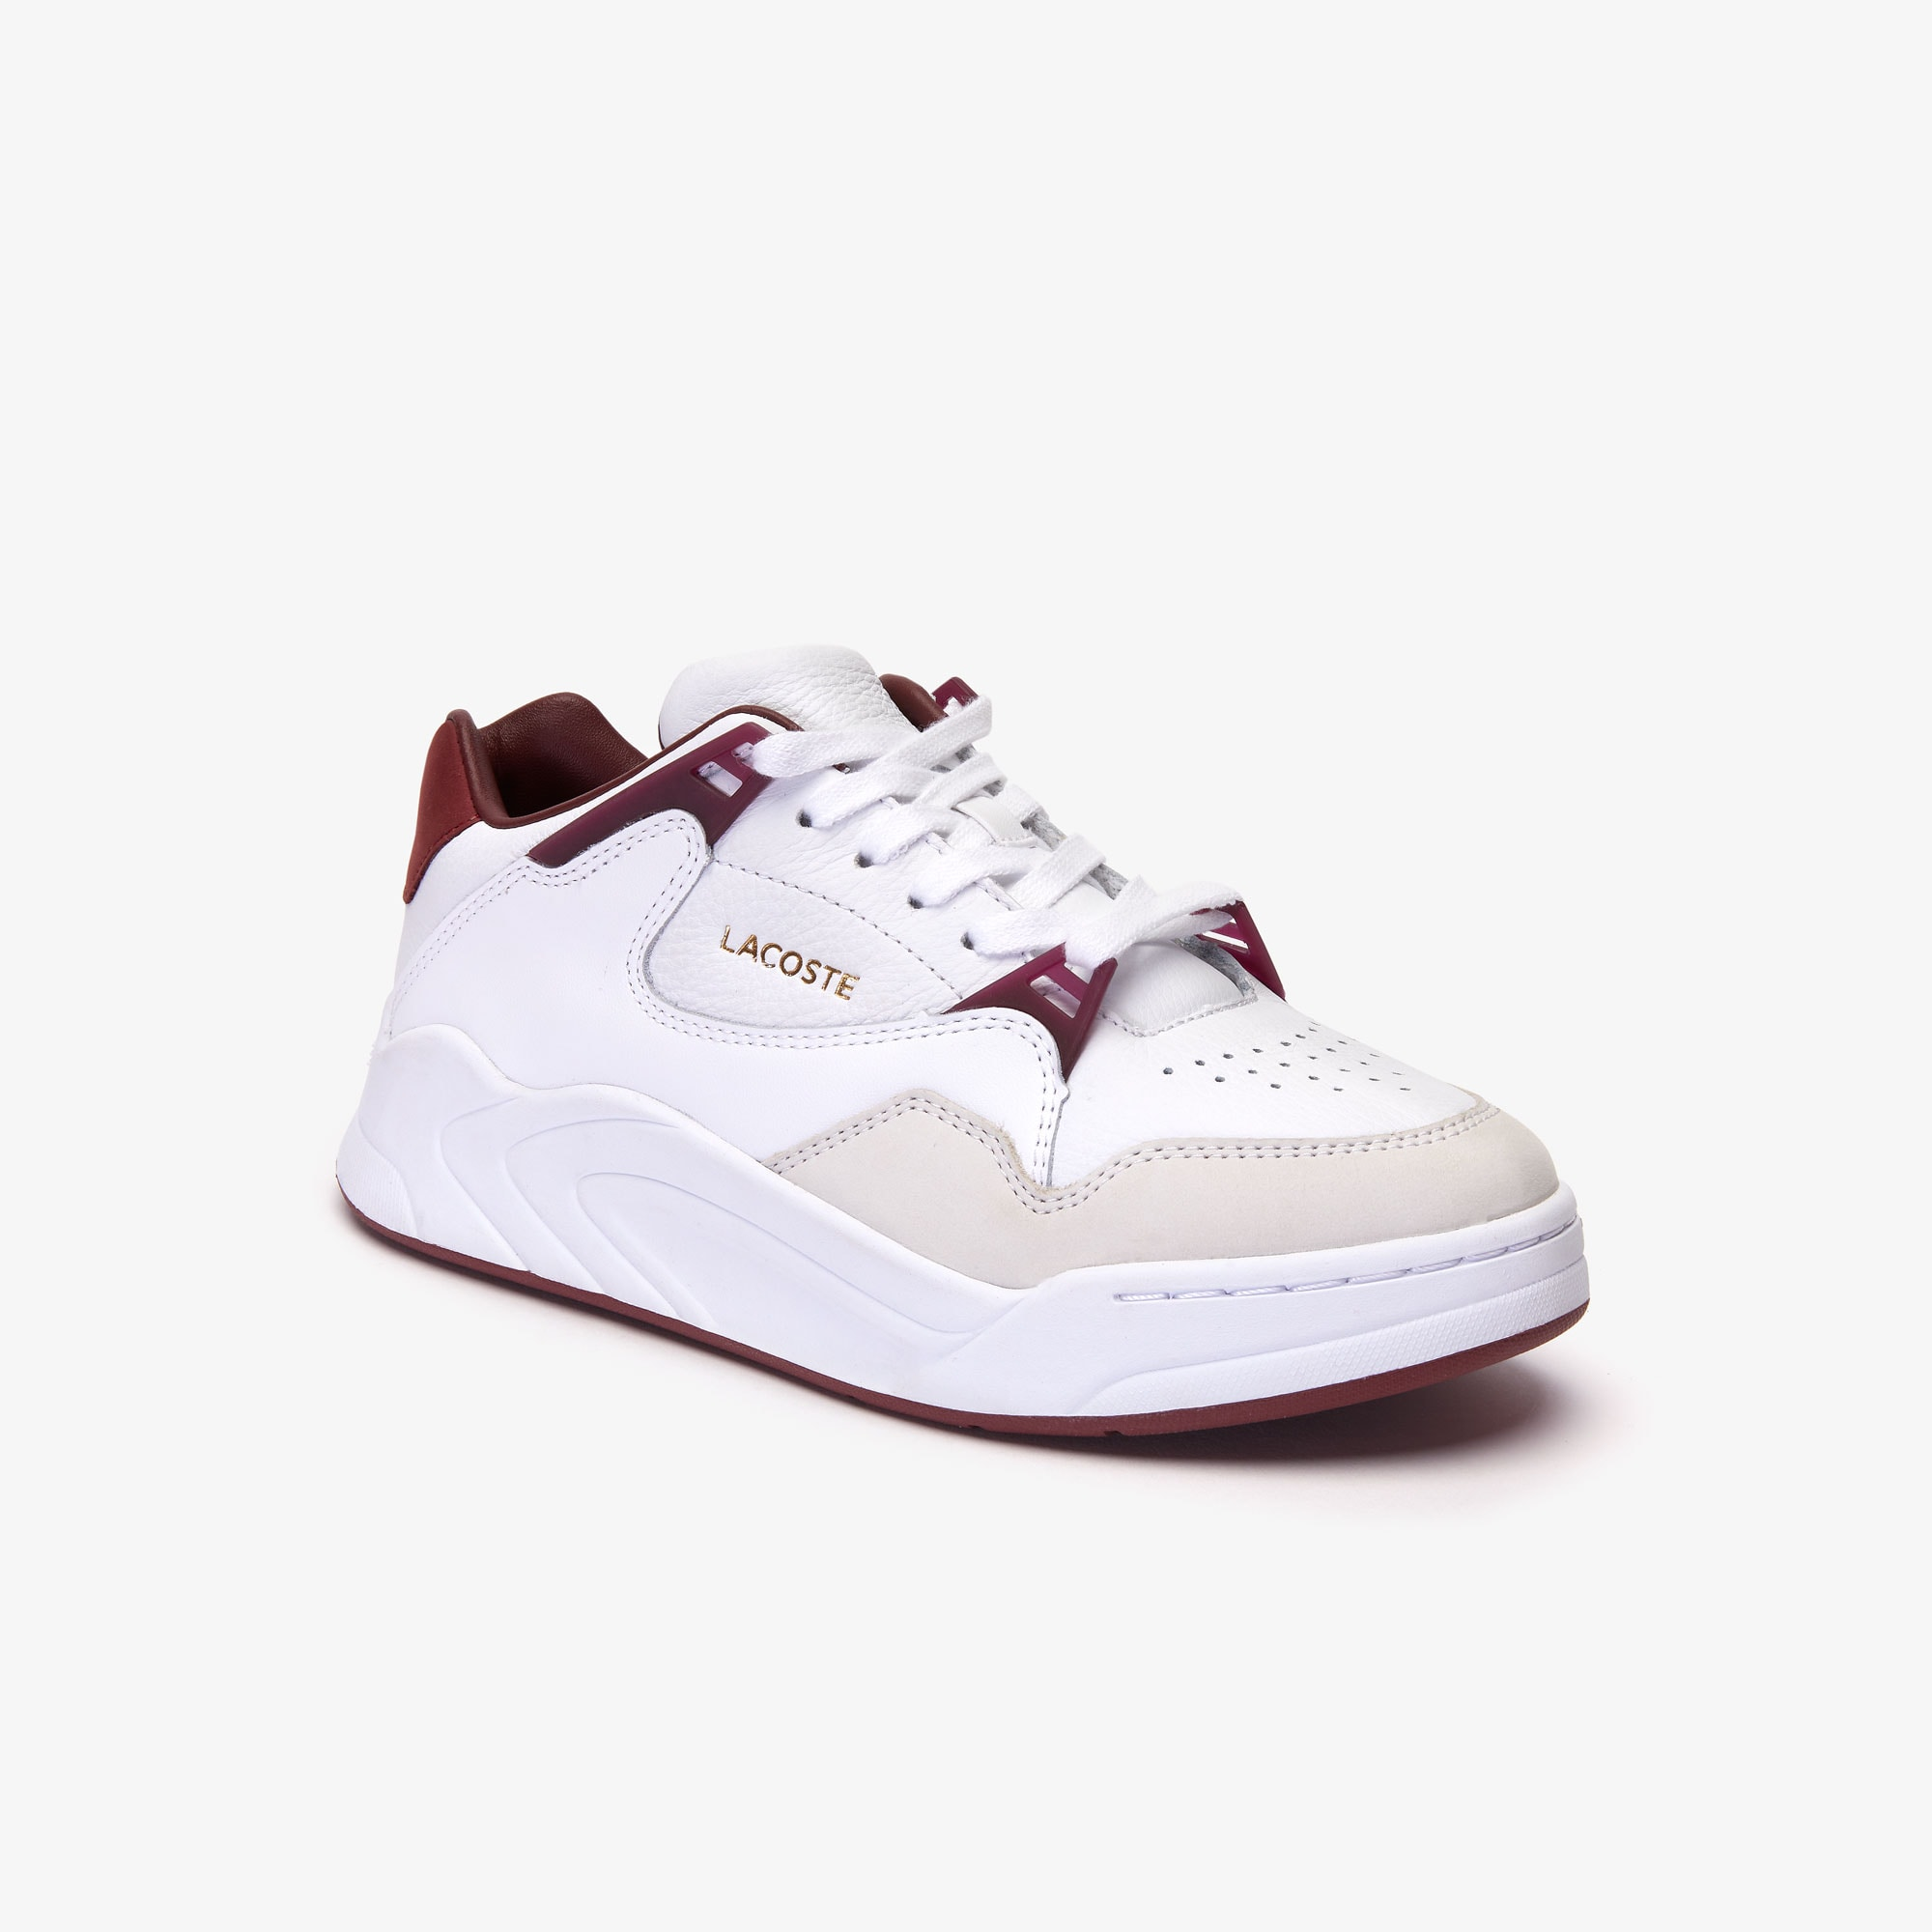 Damen-Sneakers COURT SLAM aus Leder